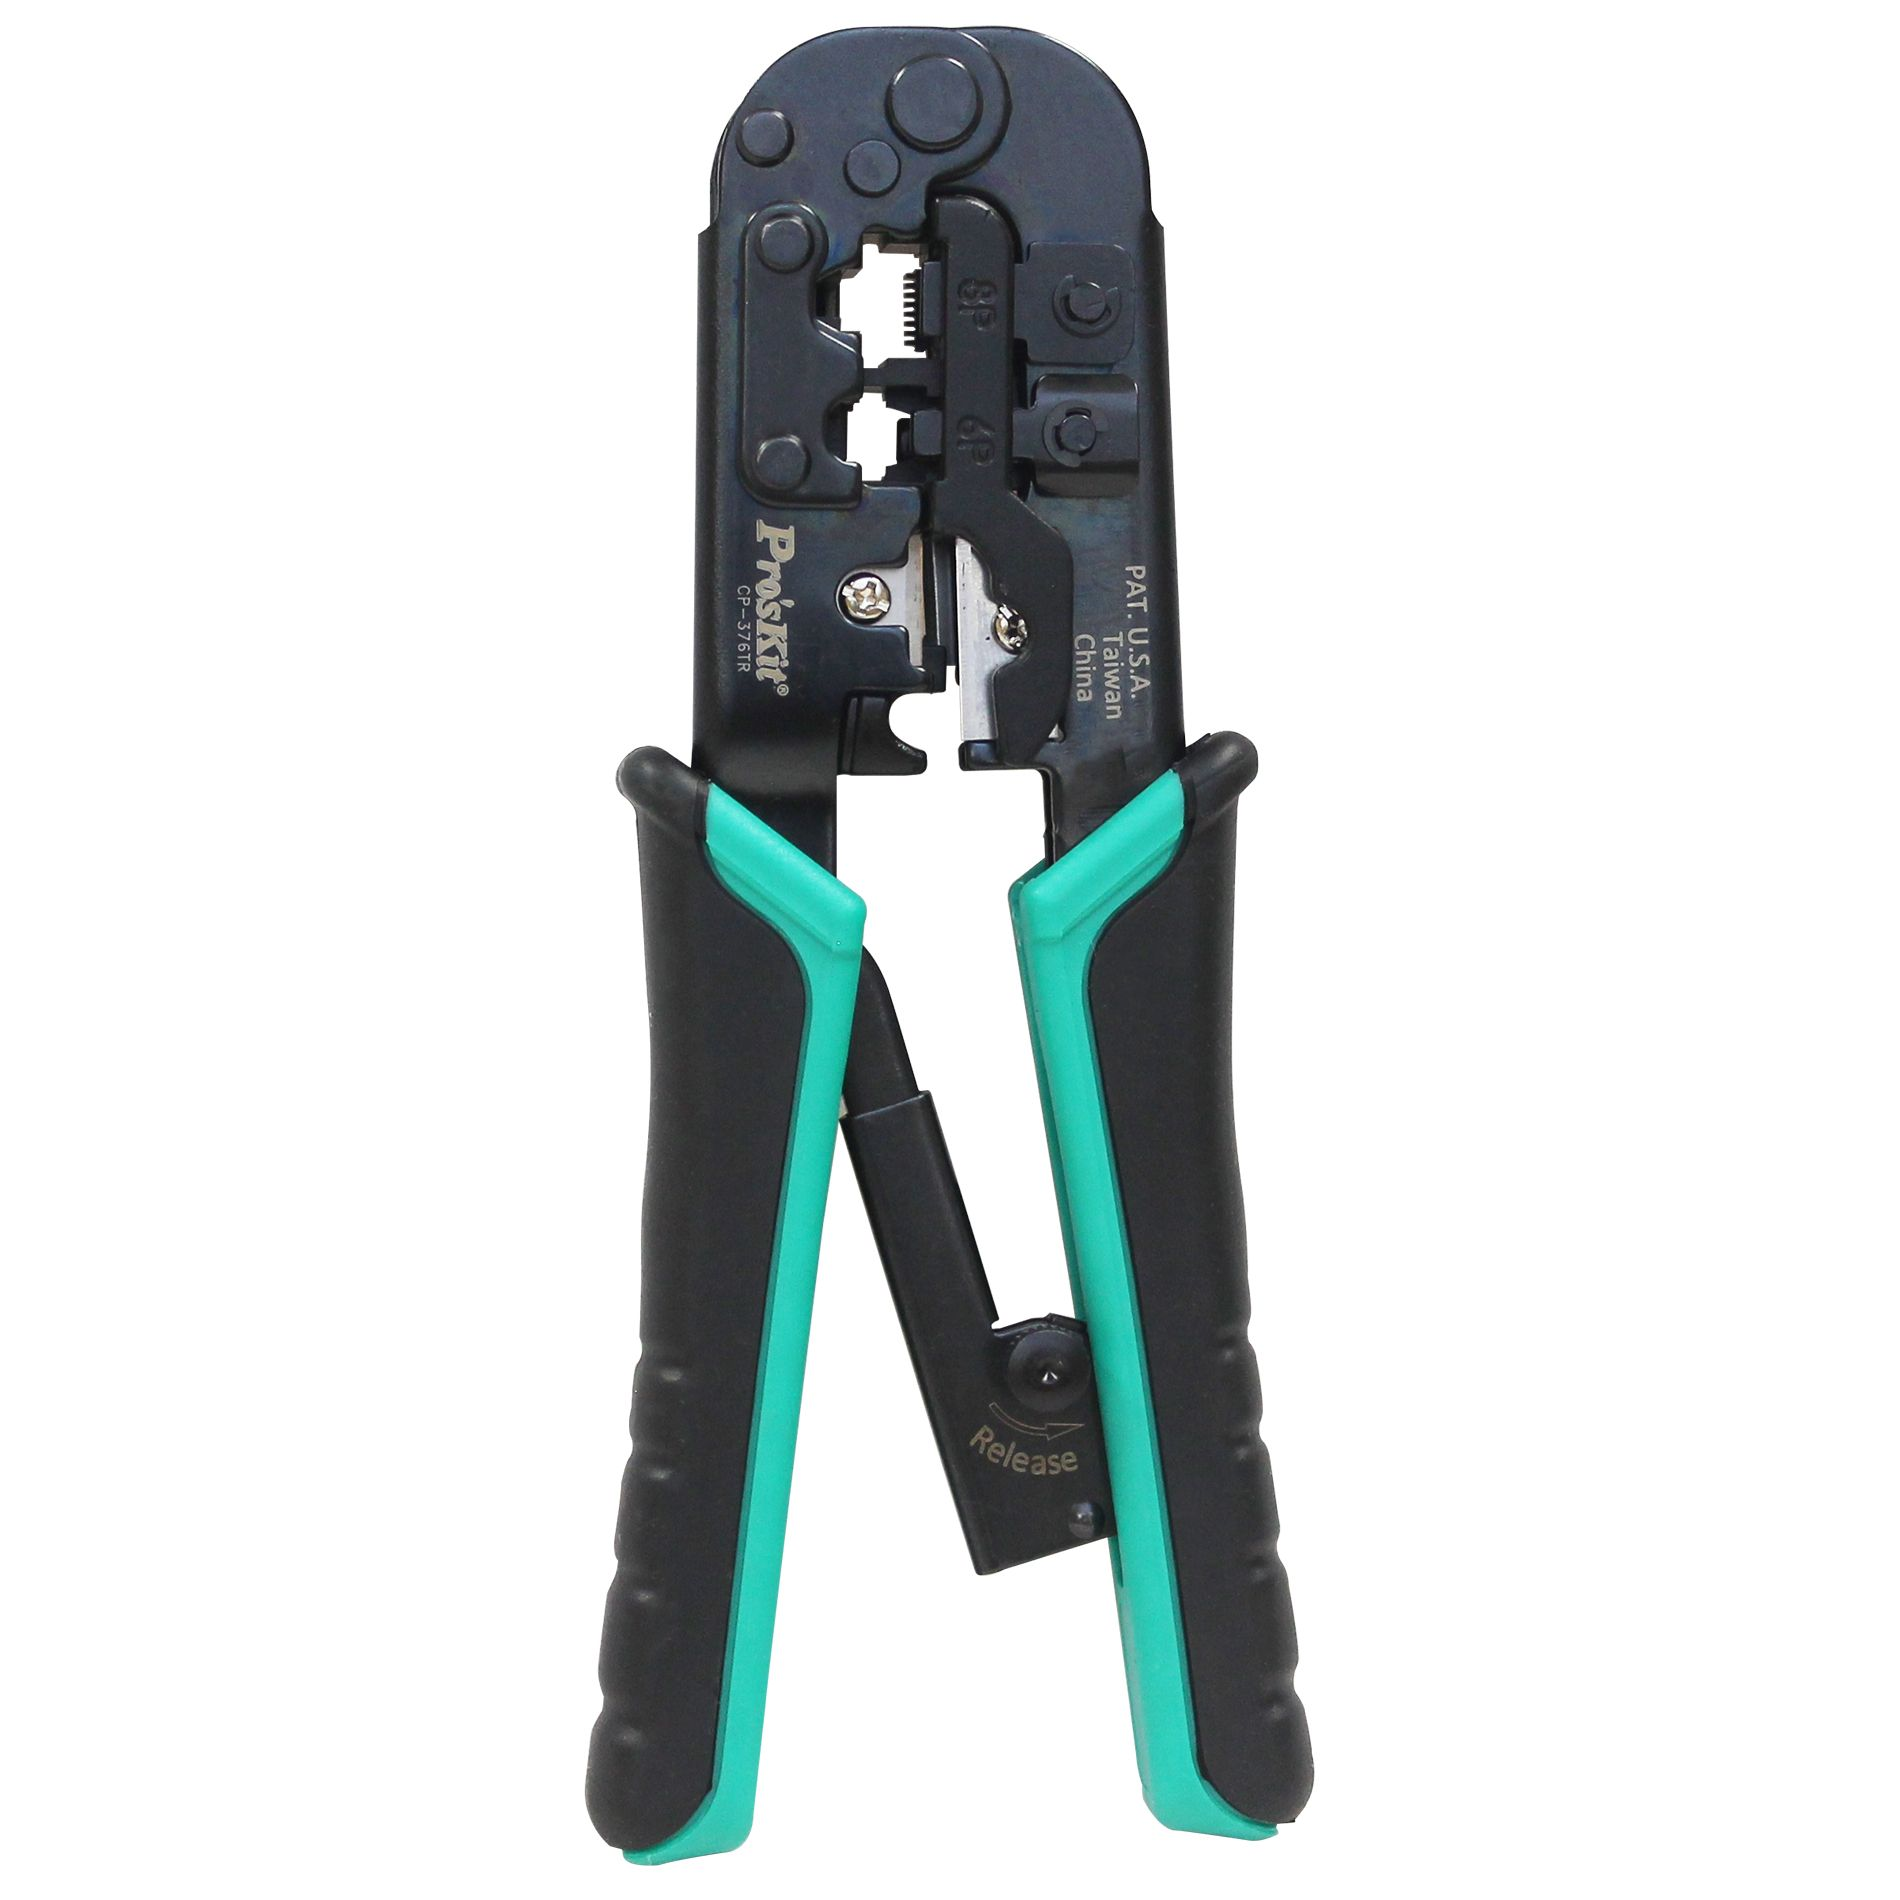 All-in-One Modular Plug Crimper